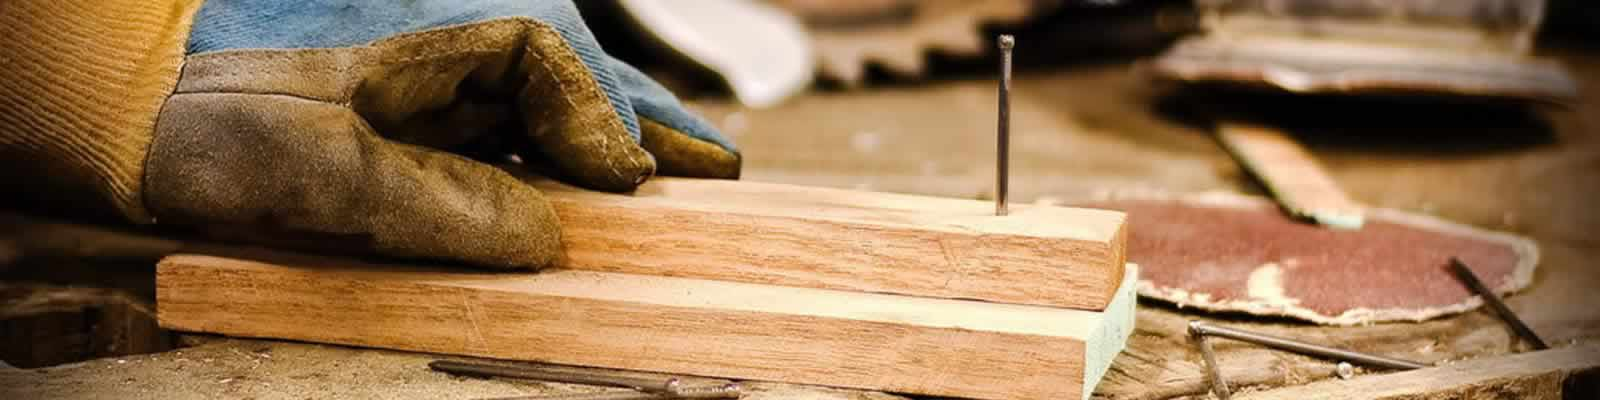 Joinery services for projects in Greenford